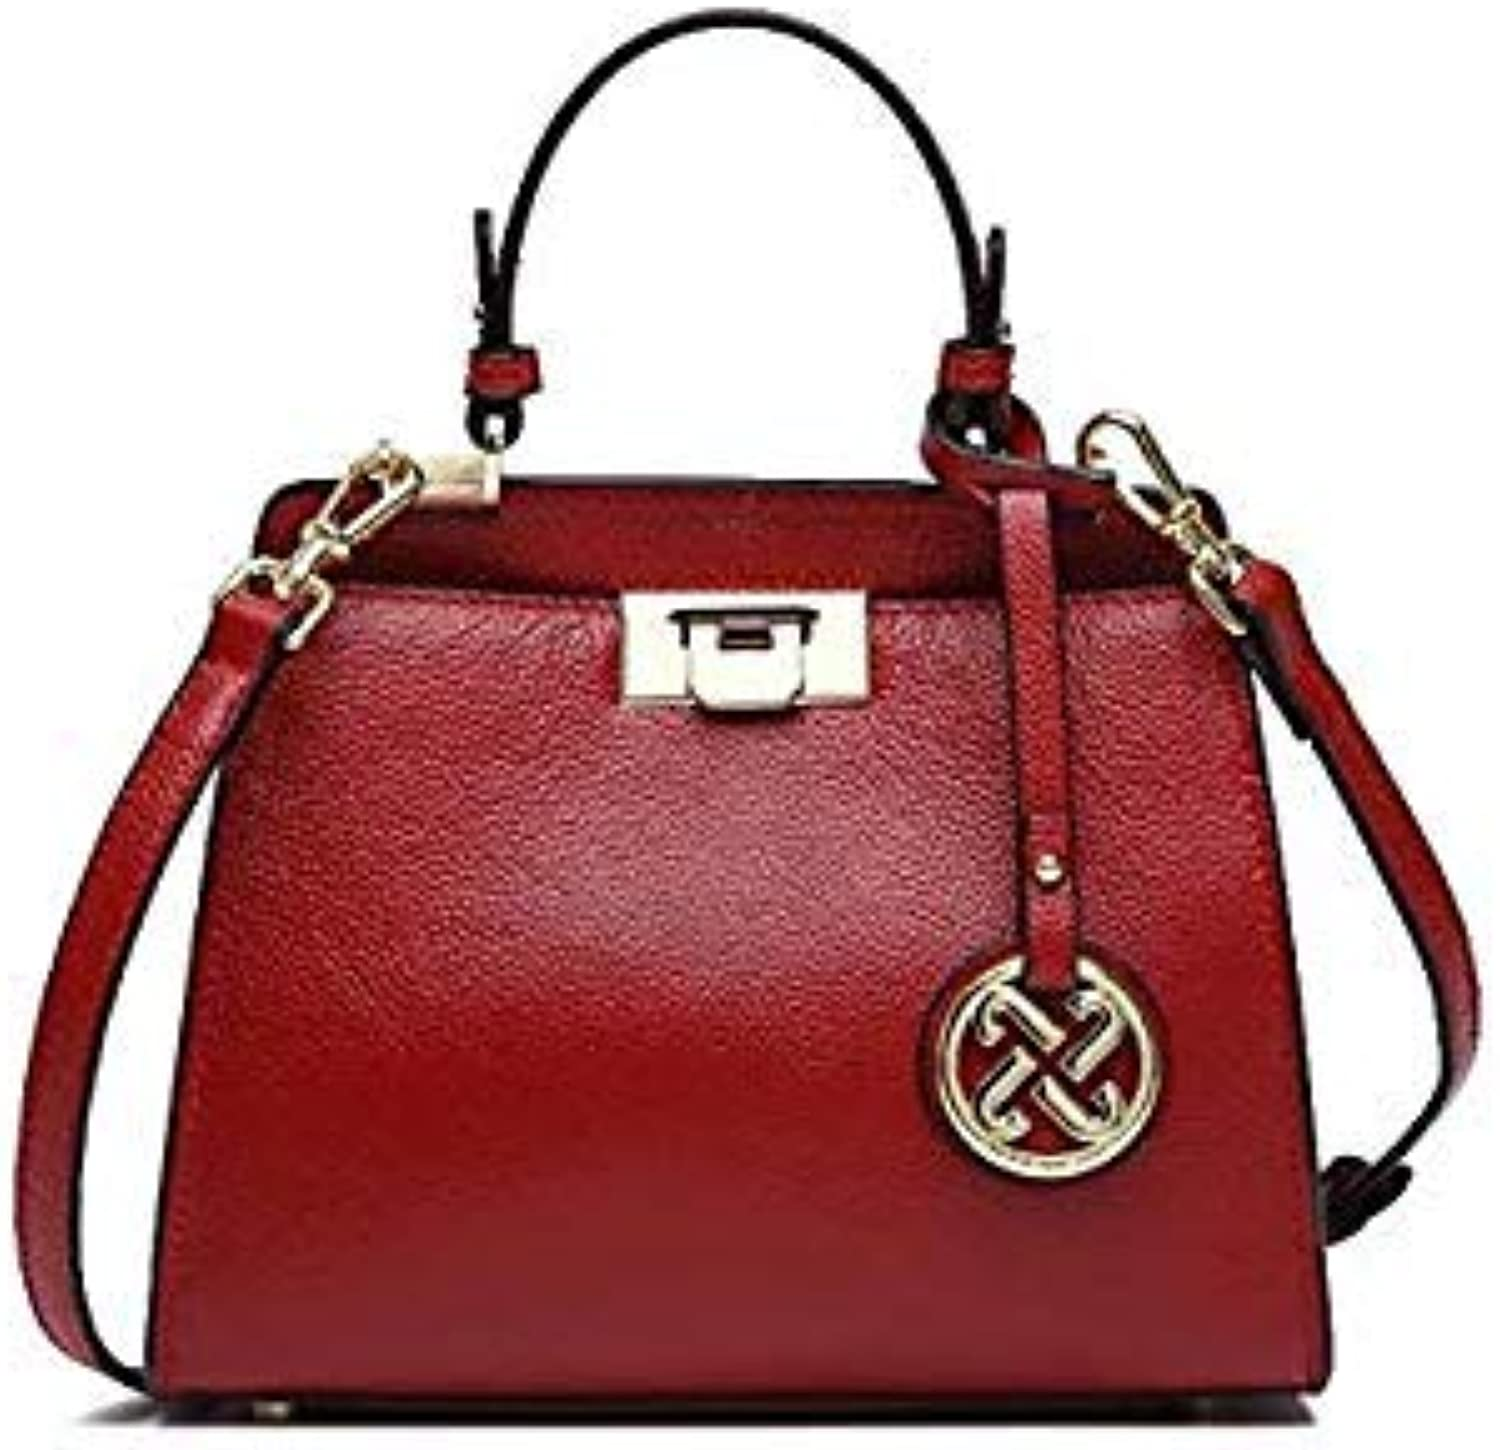 Brand Women Genuine Leather Handbags Famous Brands Handbag Messenger Bags Small Shoulder Bag Tassel Metal Lock Tote Bags Red 245x210x100mm